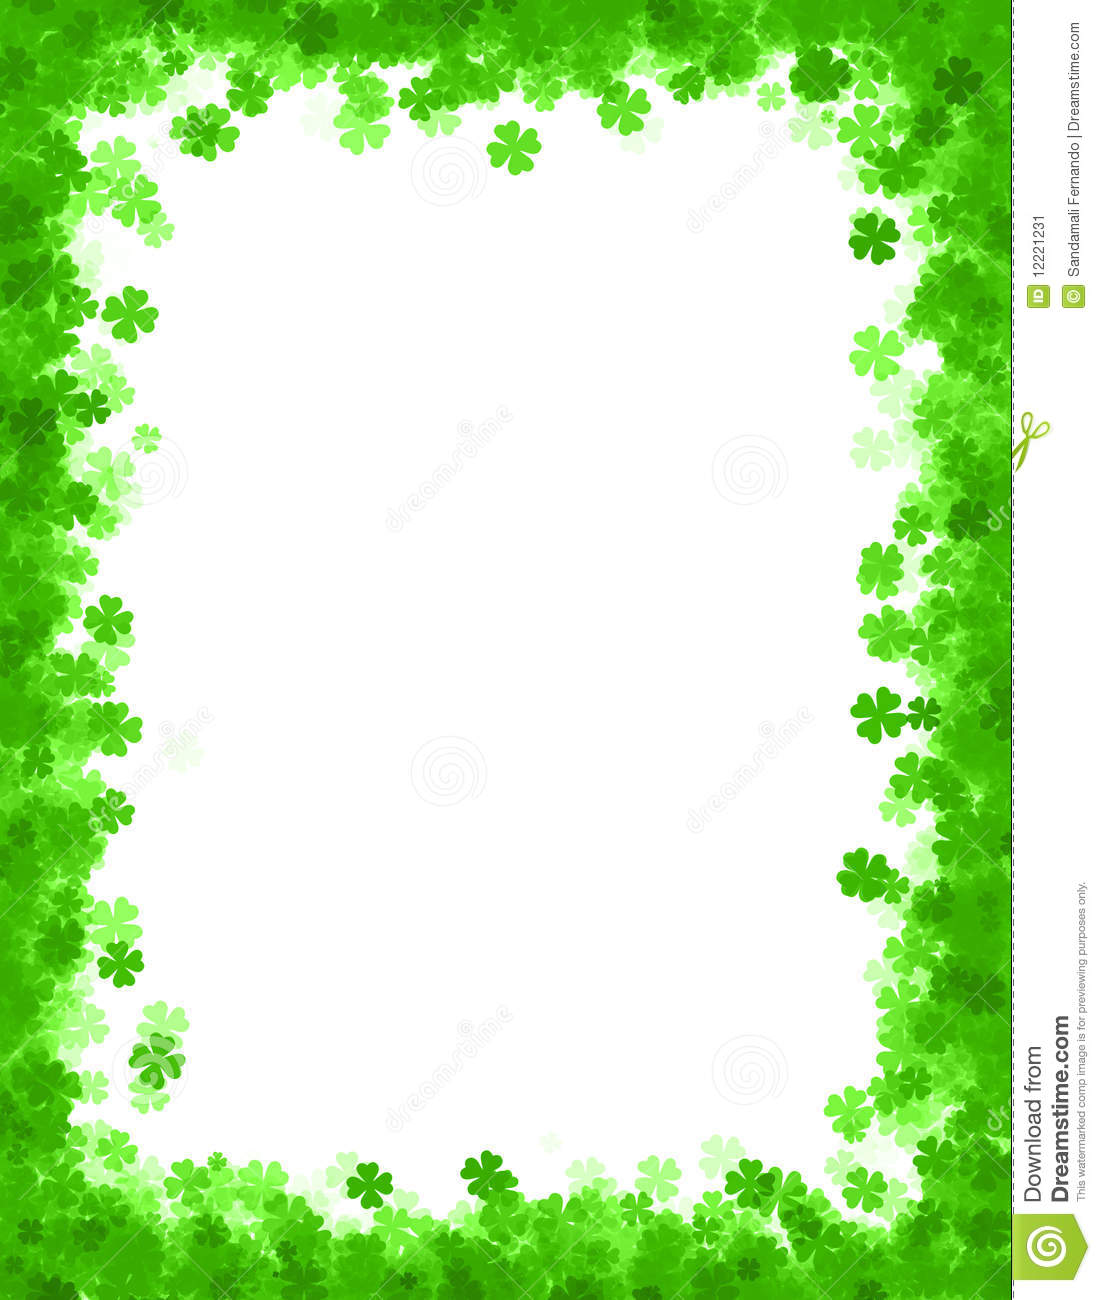 St. Patrick's Day Borders Clipart - Clipart Suggest